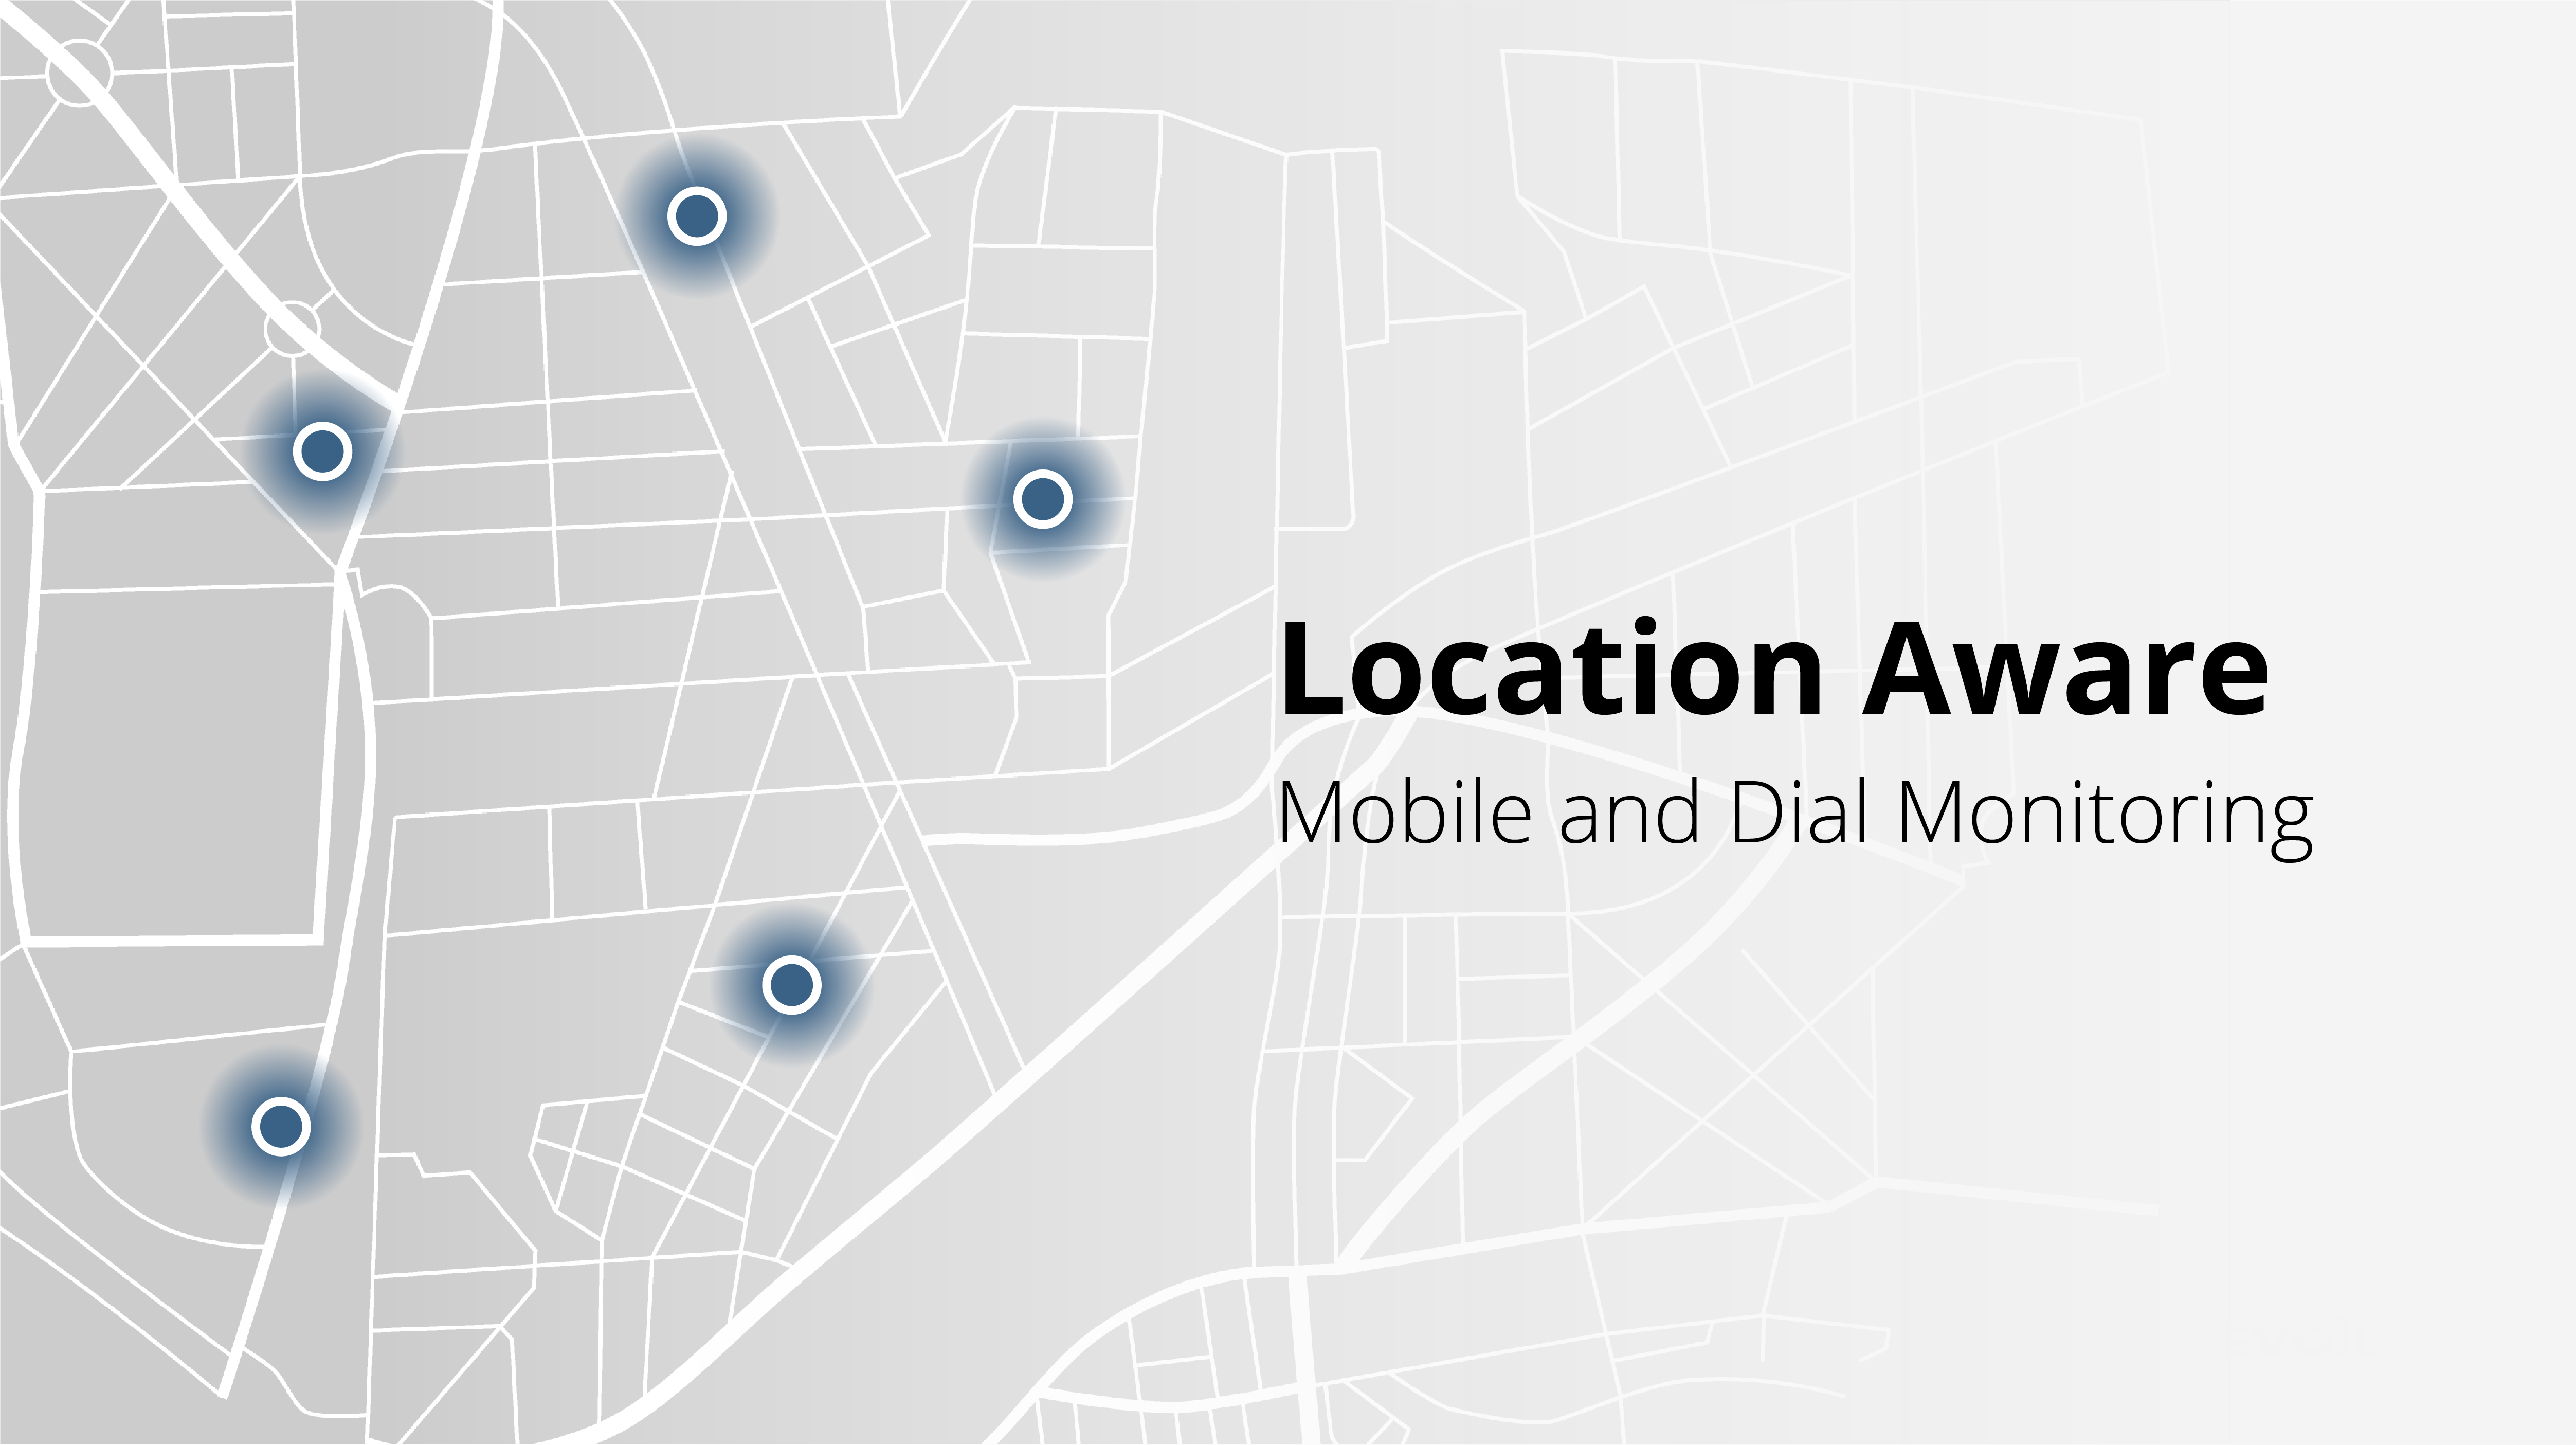 Location Aware Mobile and Dial Monitoring